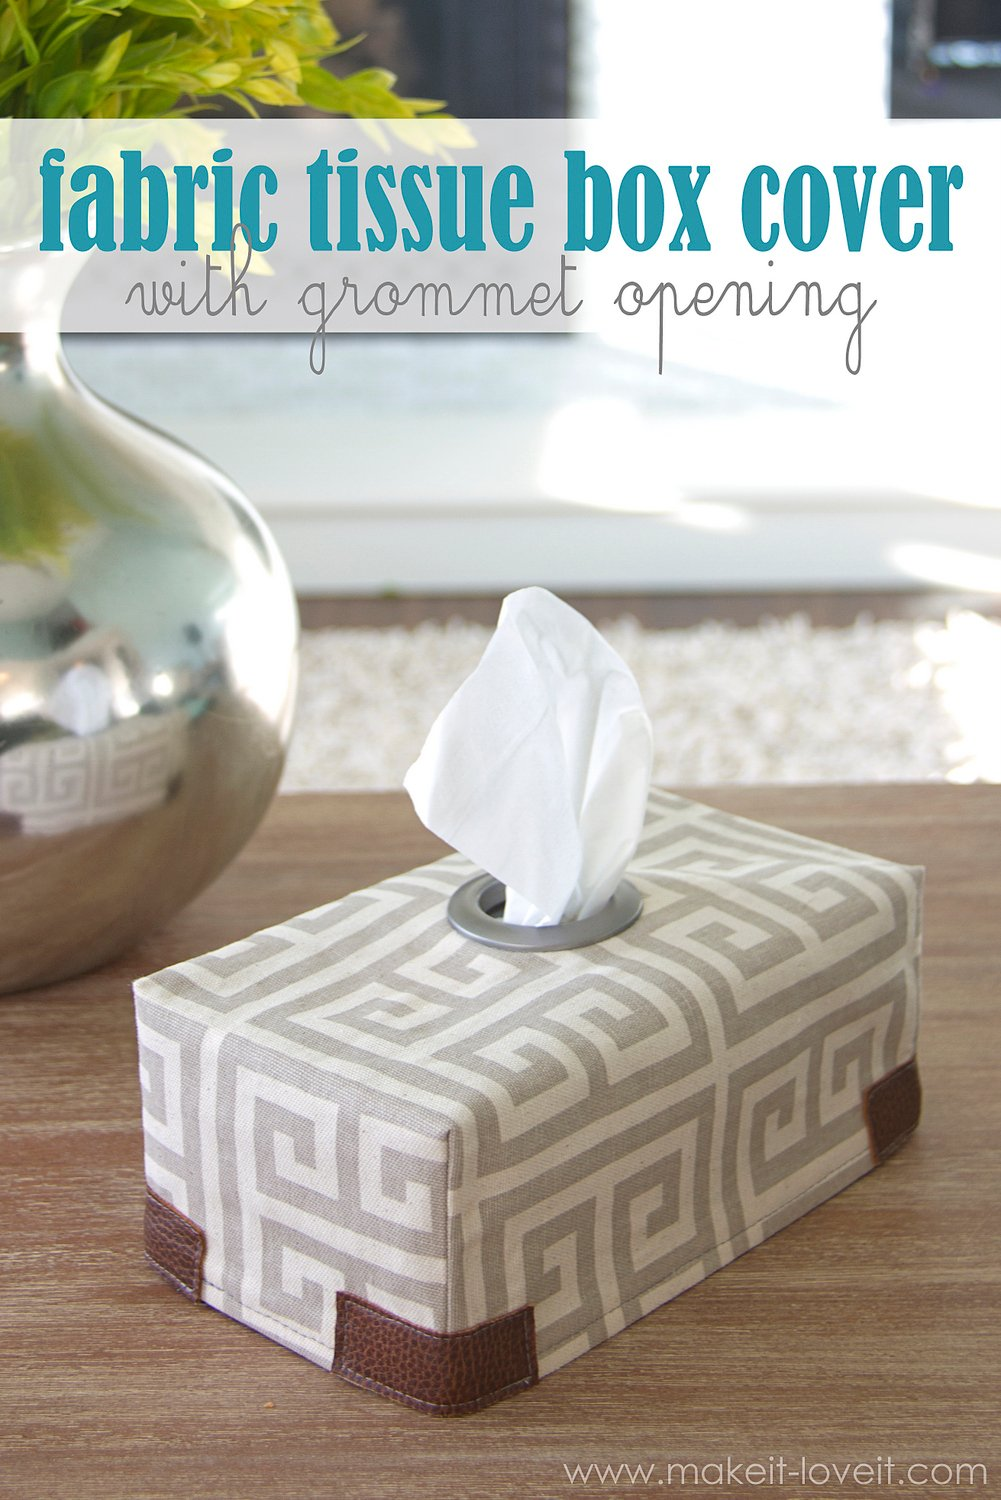 Fabric Tissue Box Cover…with Grommet opening